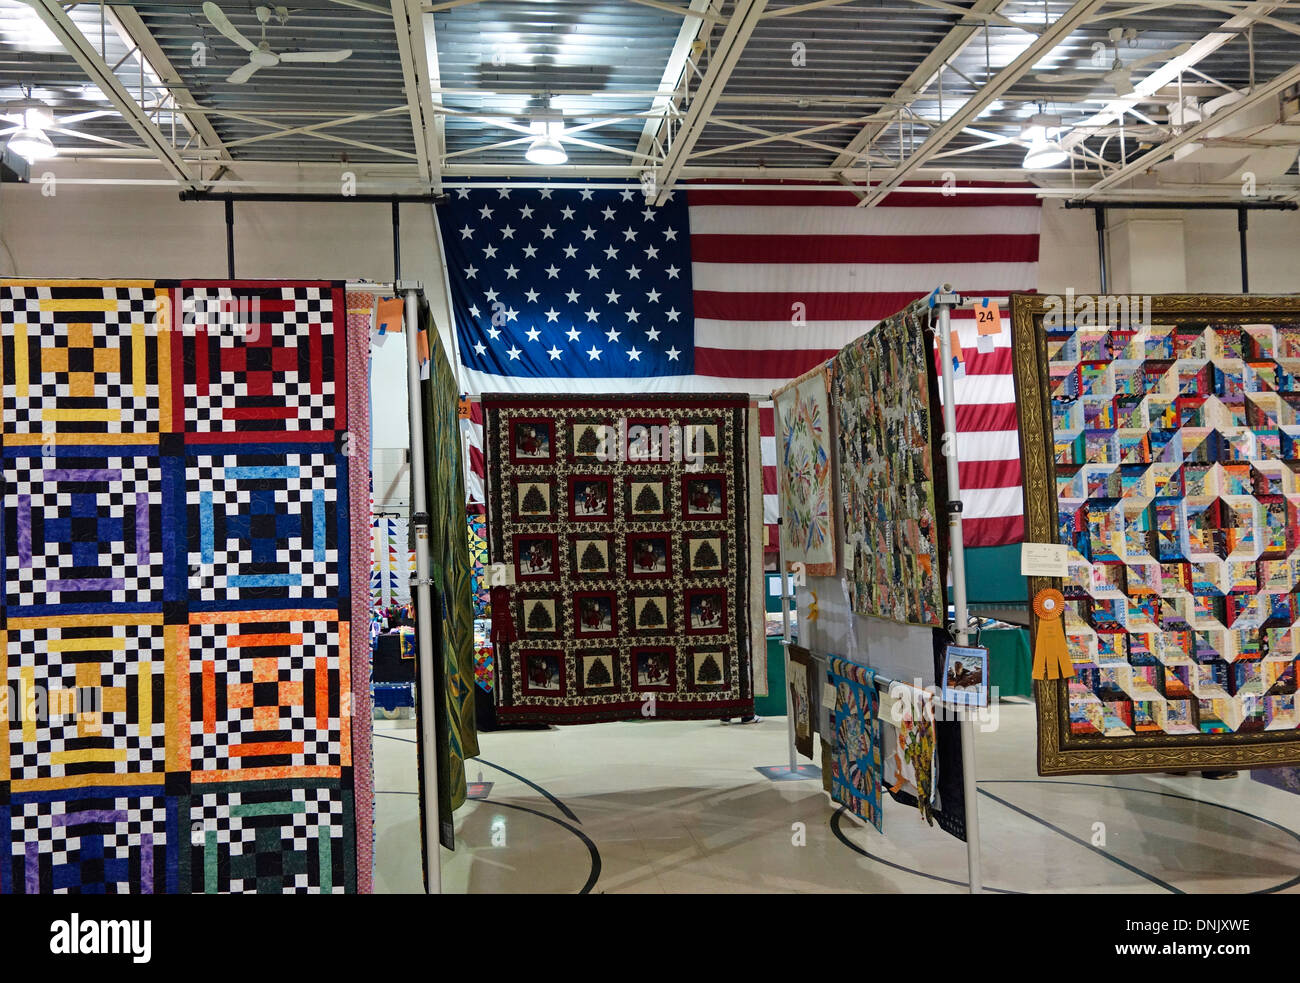 Quilt show in Mineola New York - Stock Image